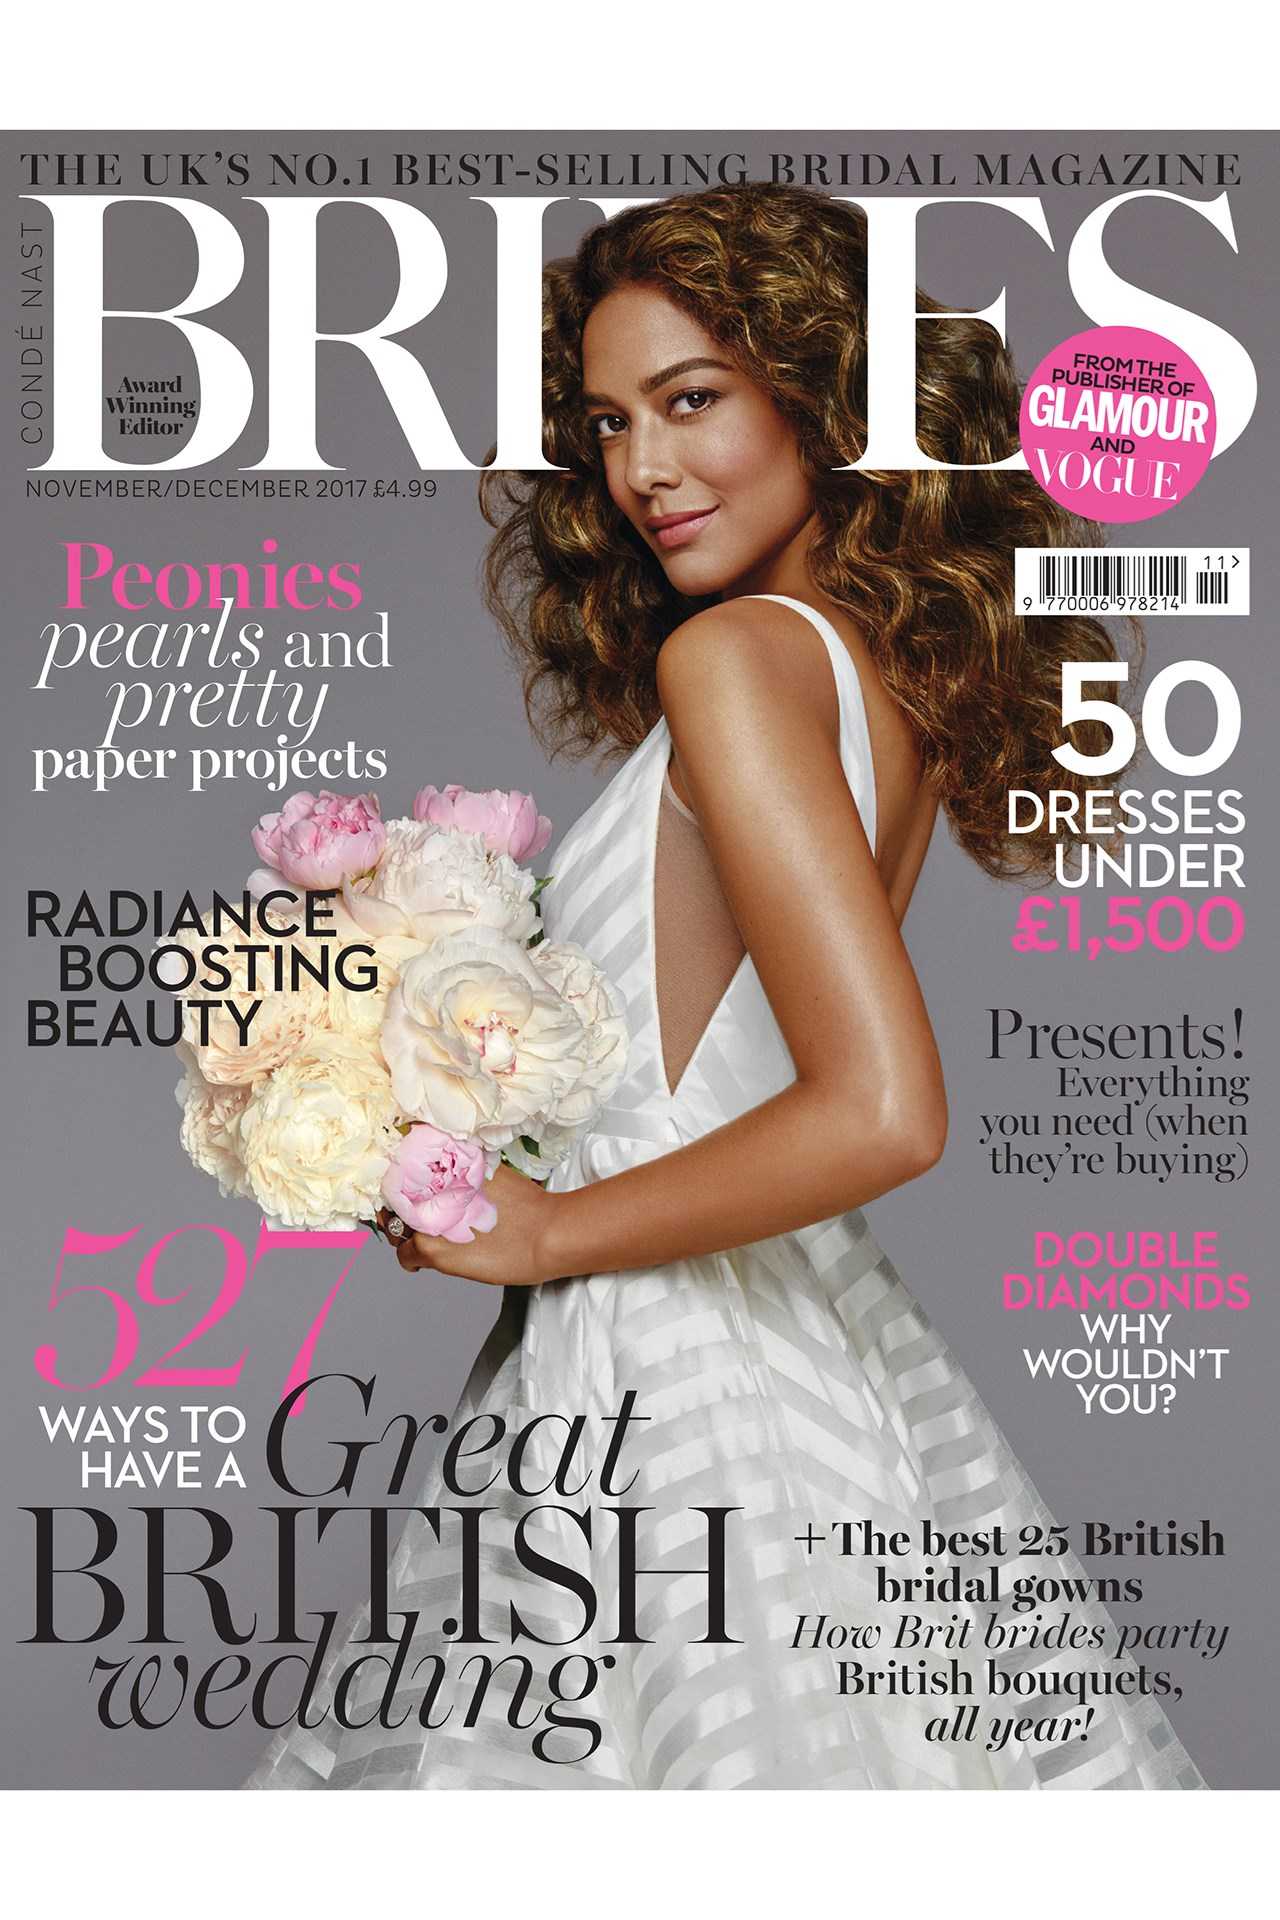 November/December 2017 cover of UK Brides magazine mentioning Epilium Skin